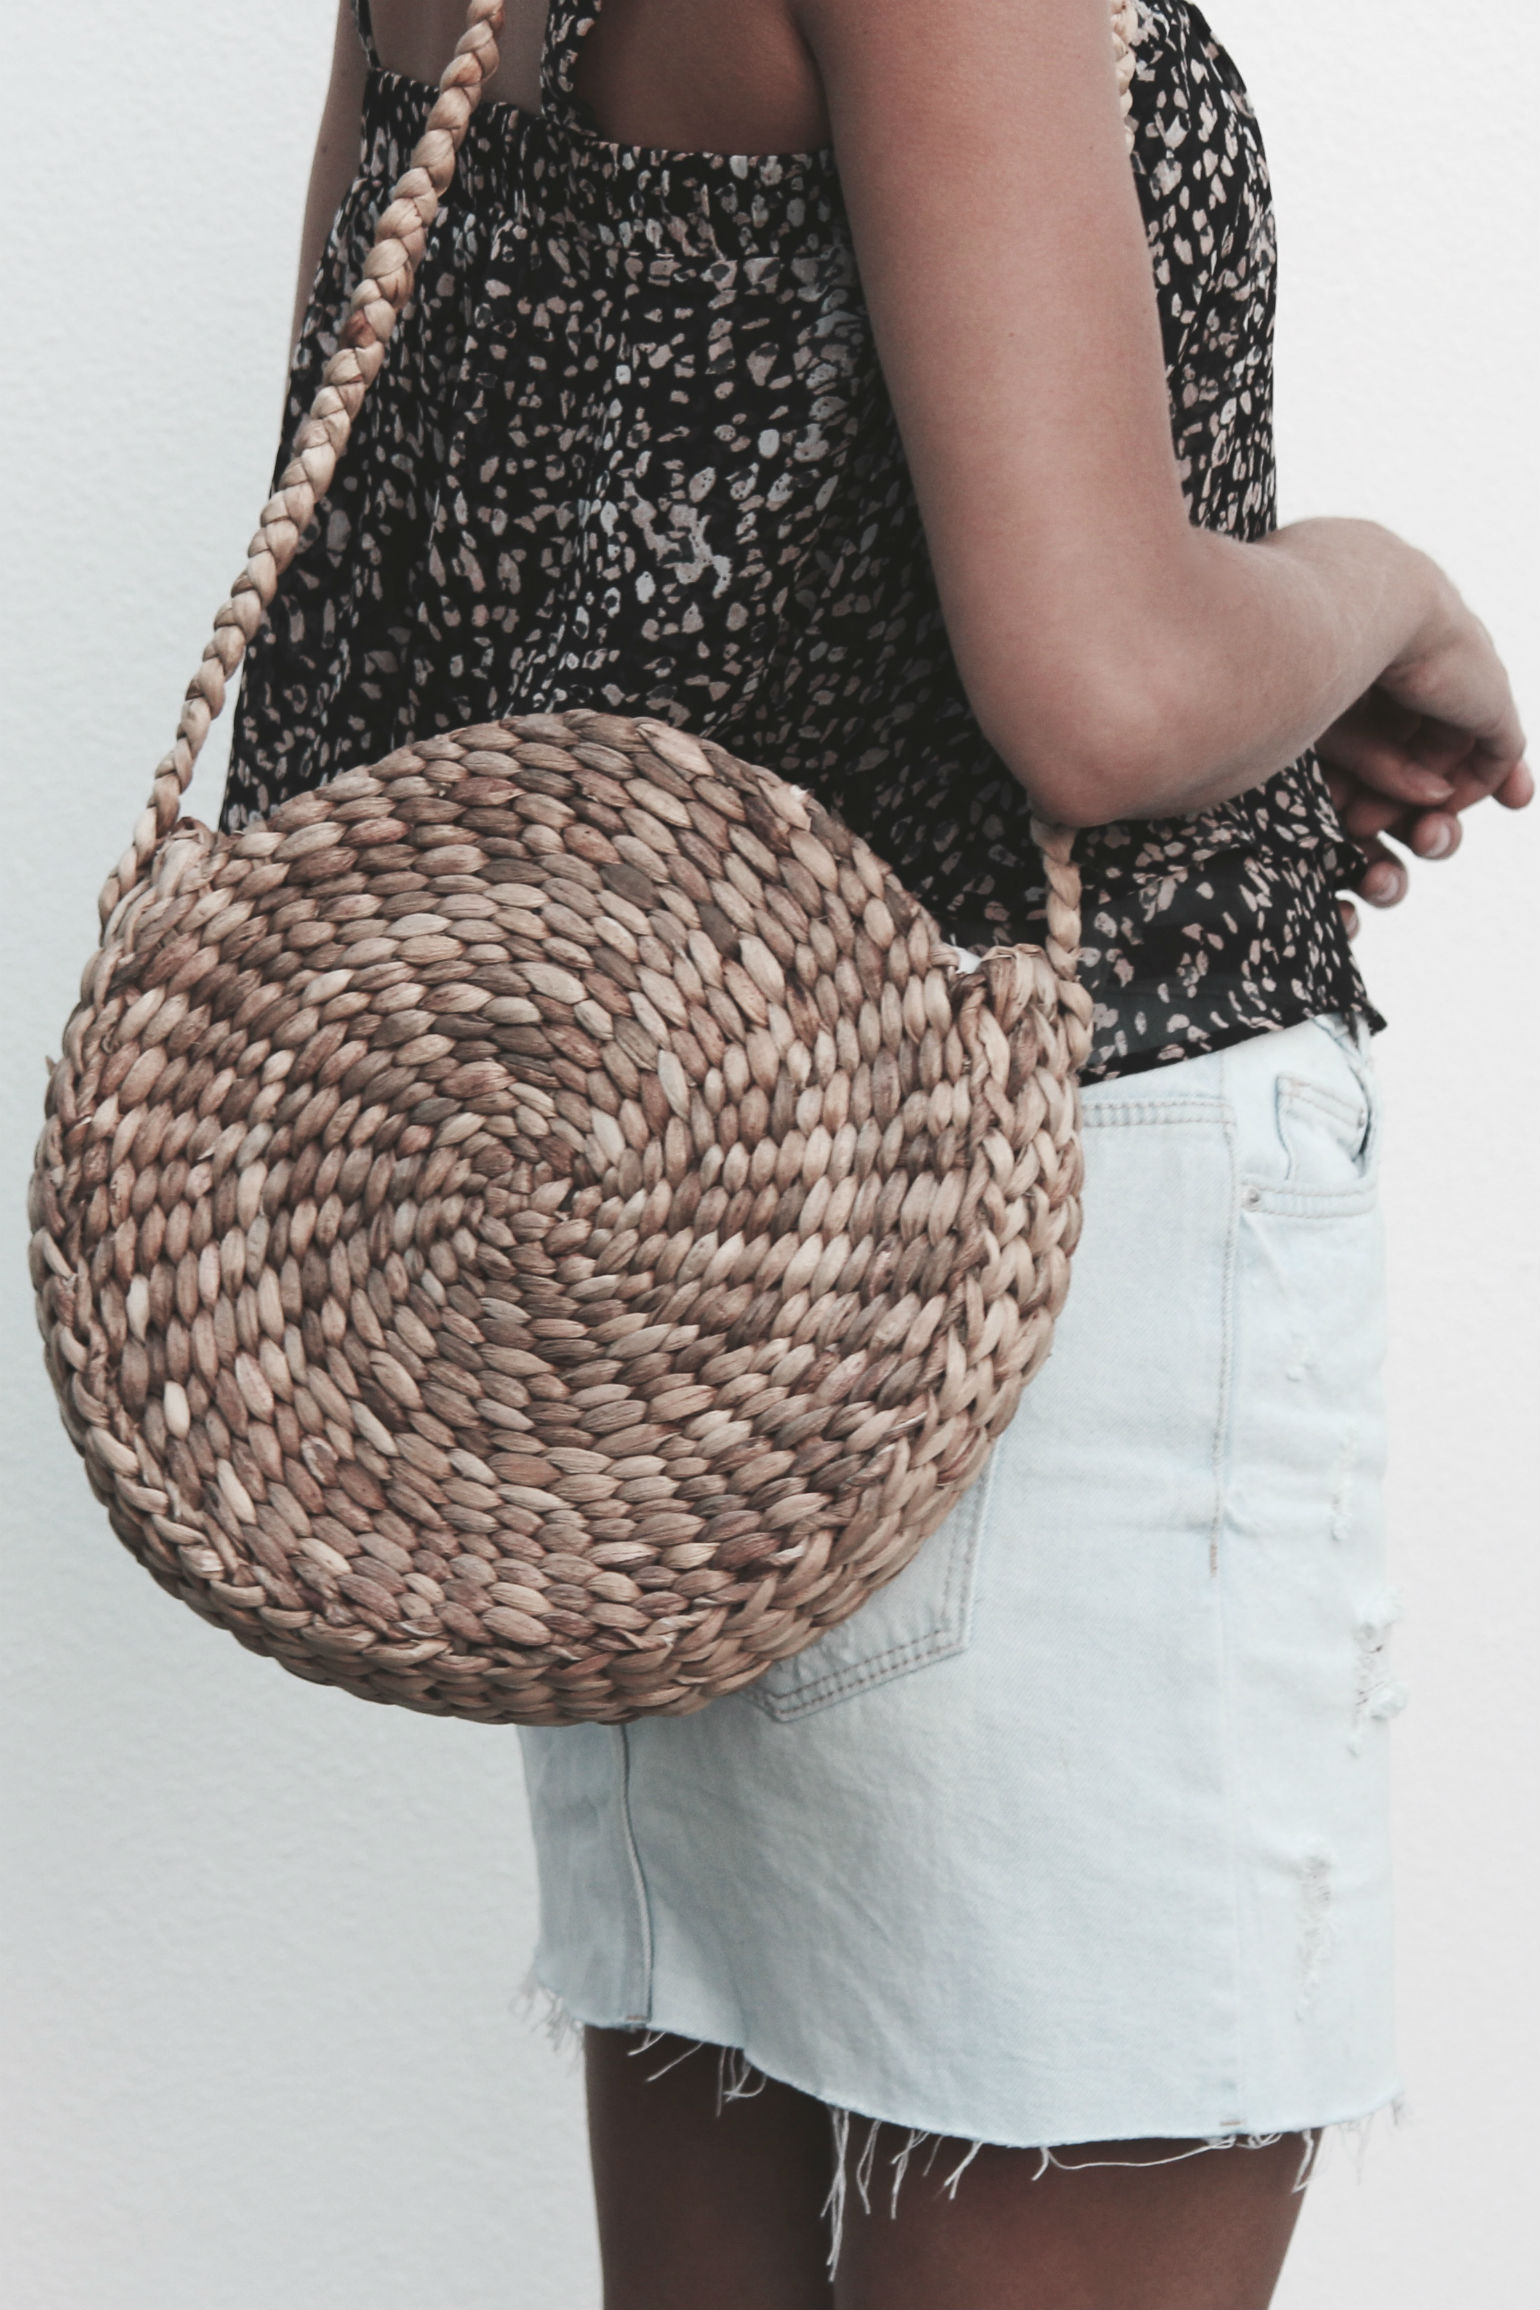 Scandic Gypsy Lily Round Bag